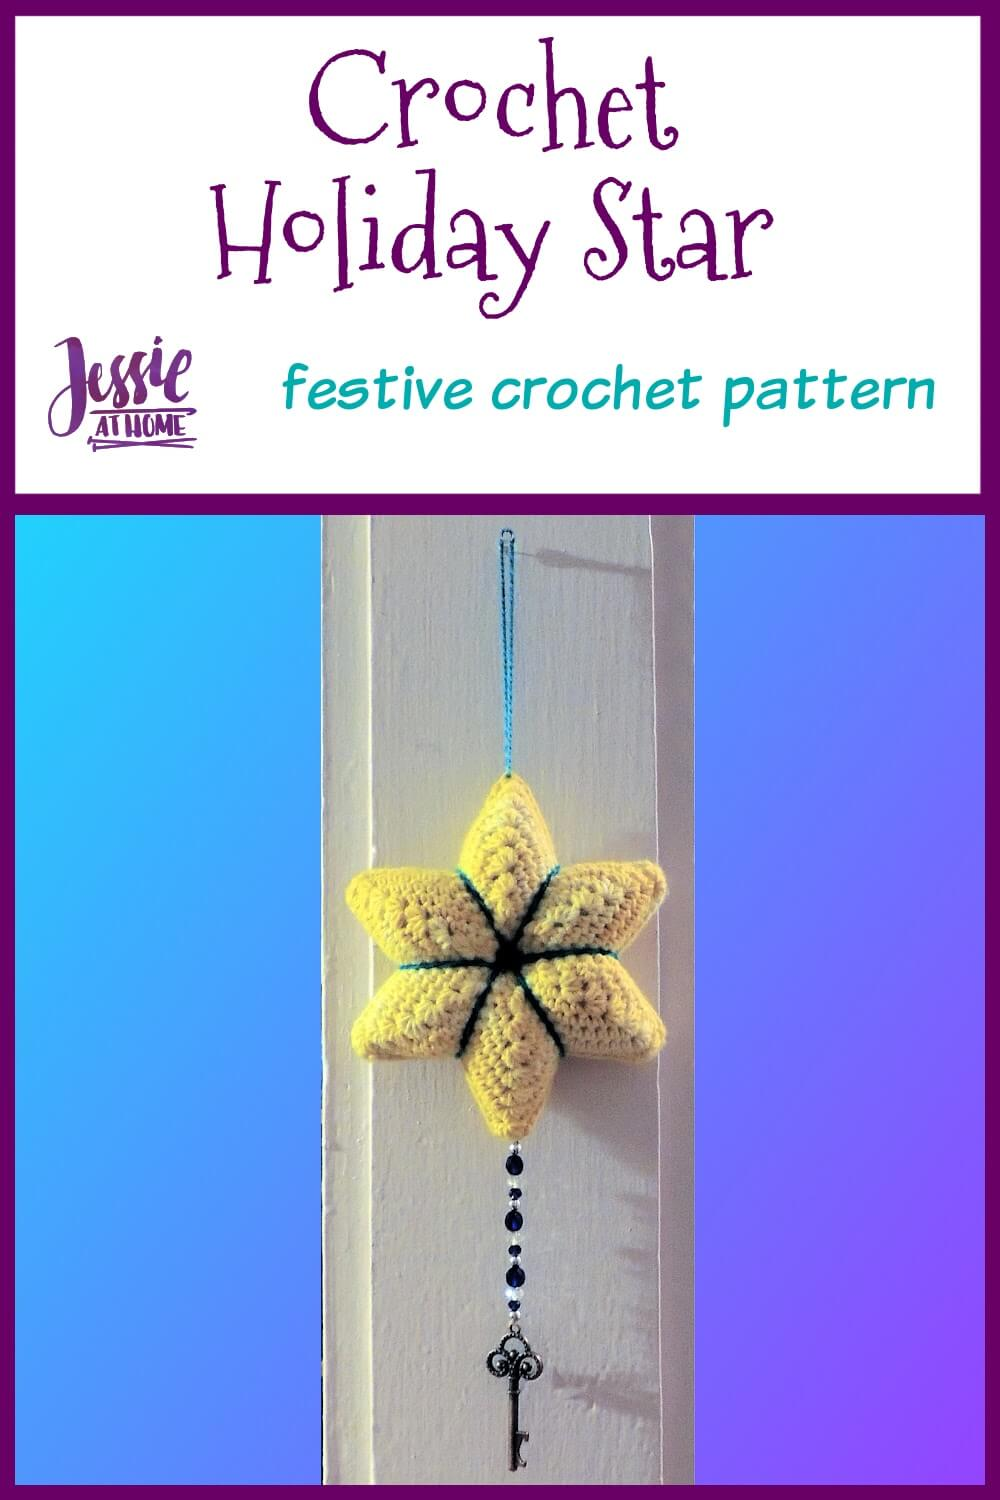 Crochet Holiday Star crochet pattern by Jessie At Home - Pin 1